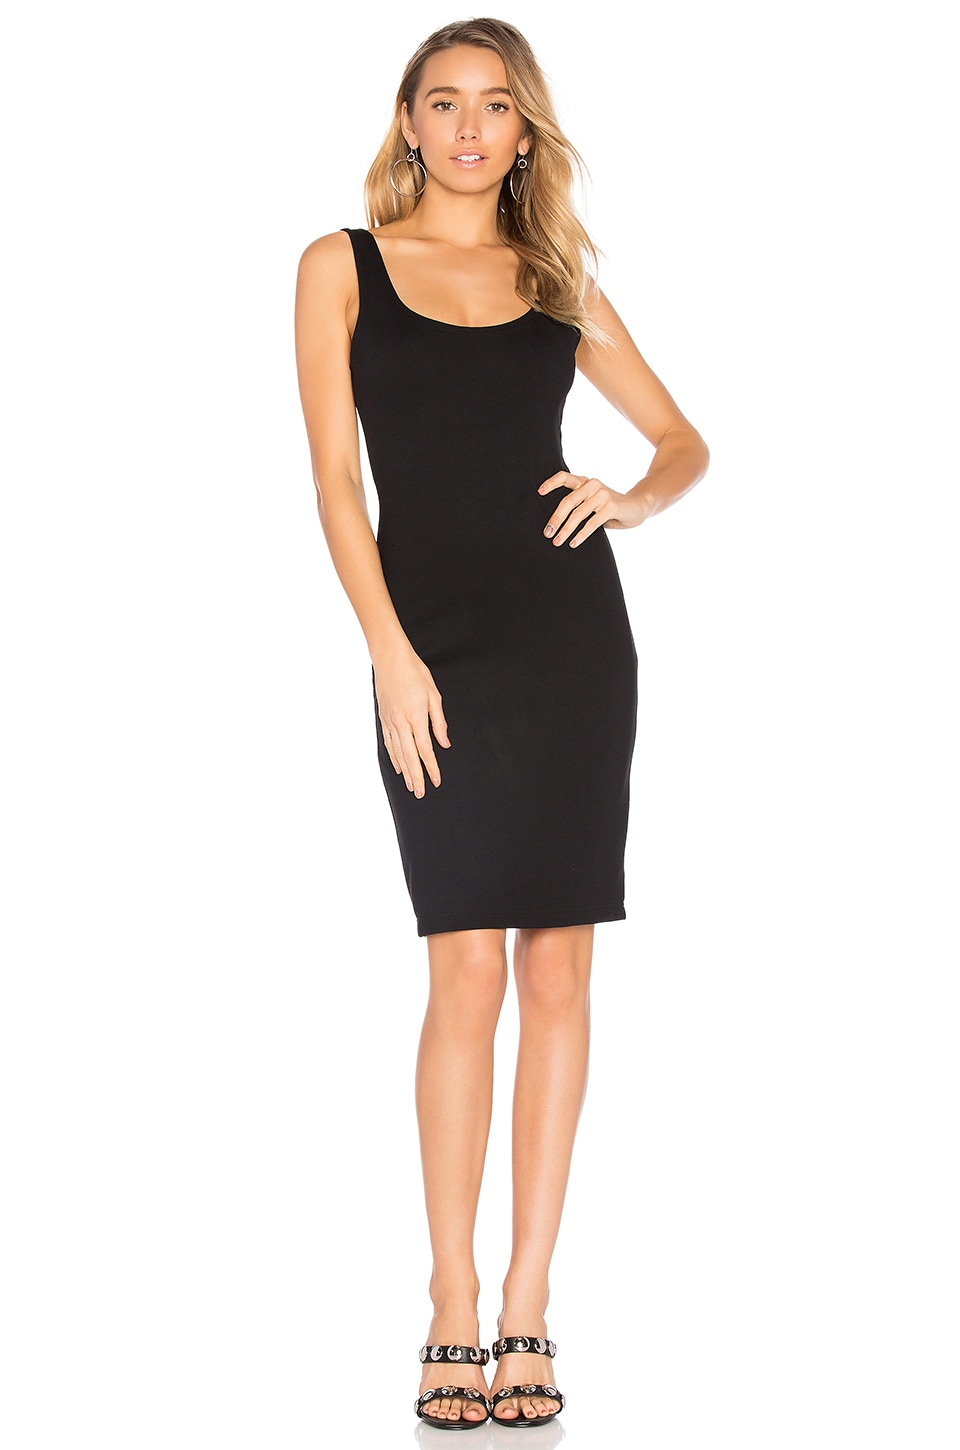 Scoop Neck Dress by BLAQUE LABEL